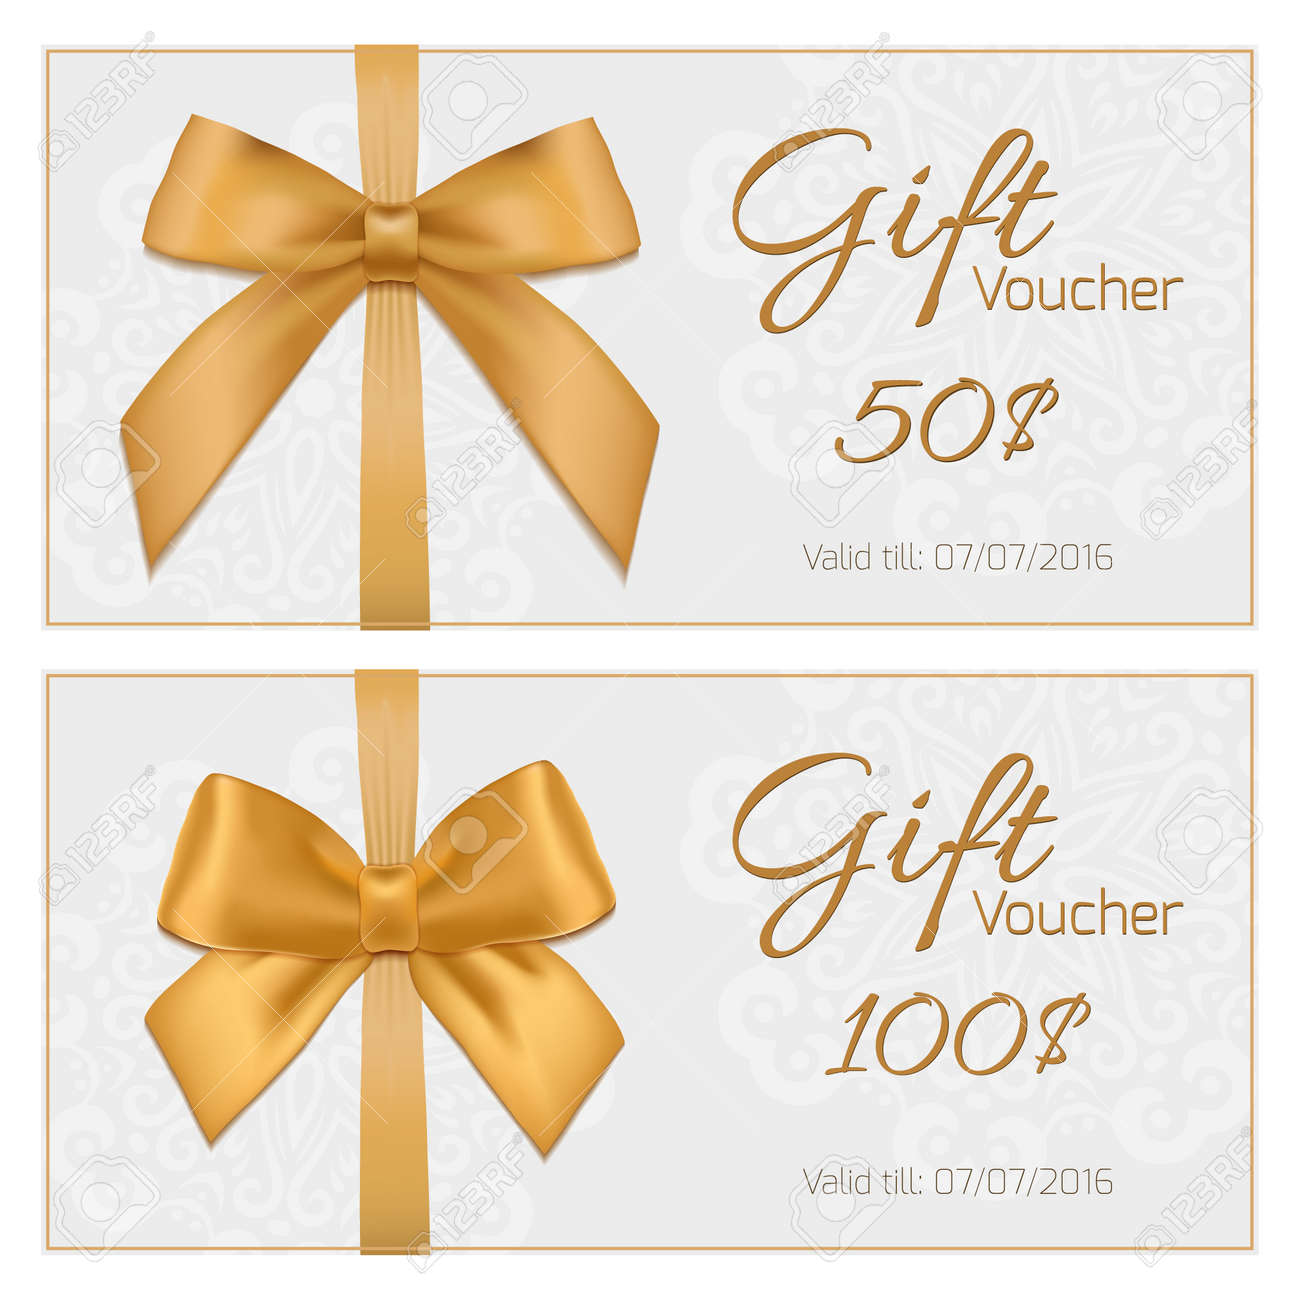 Voucher Template With Floral Pattern Border Red And Gold Bow – Template Voucher